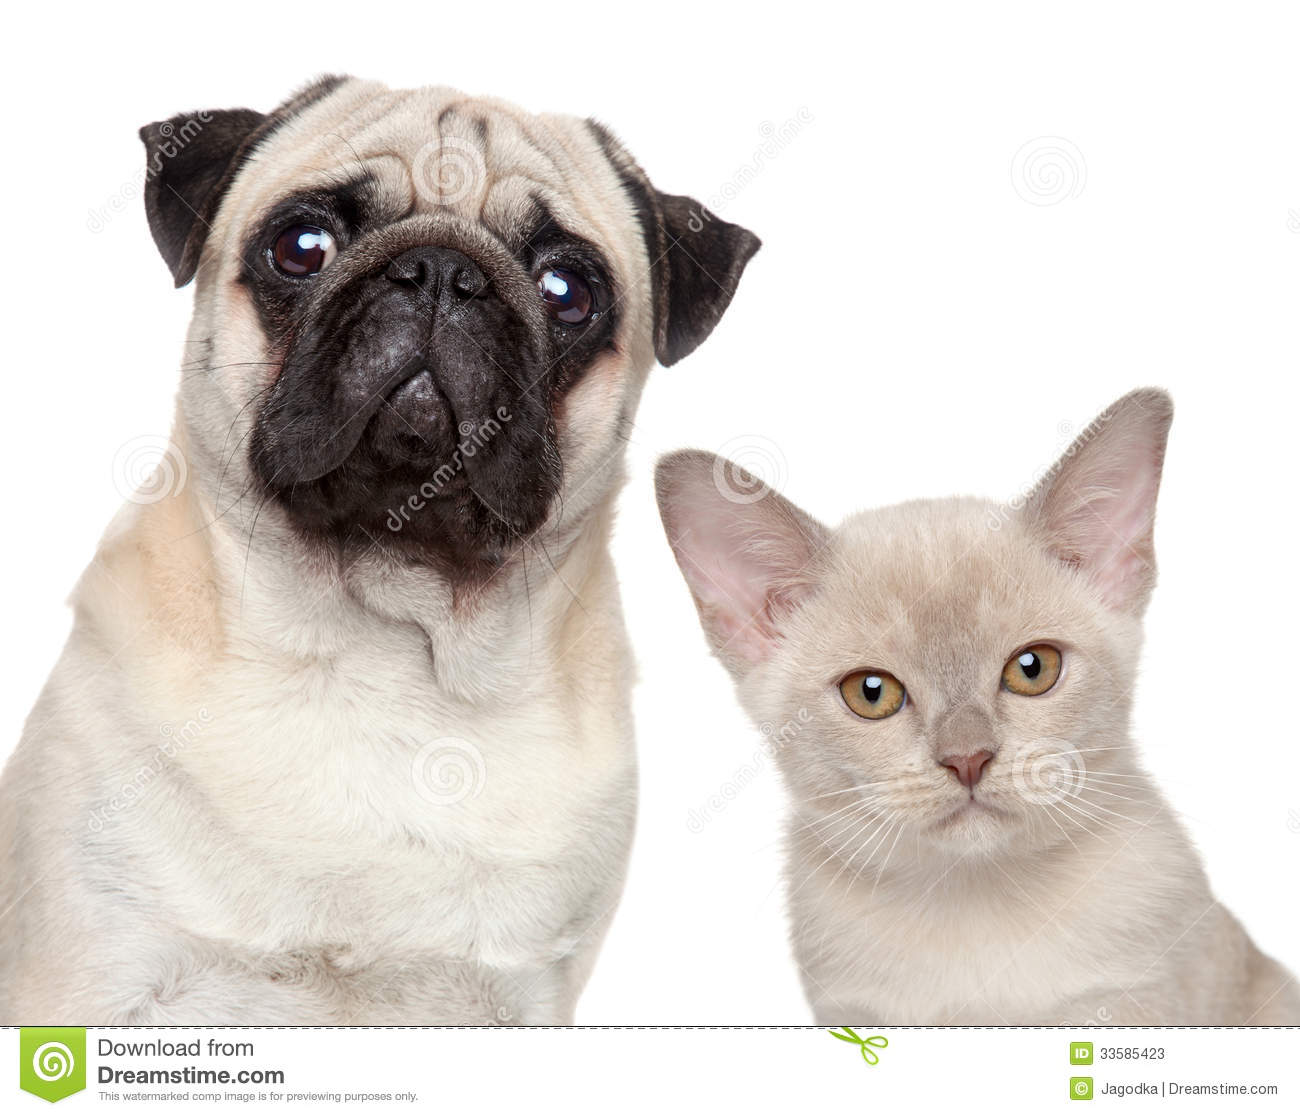 Dog and Cat together on a white background.